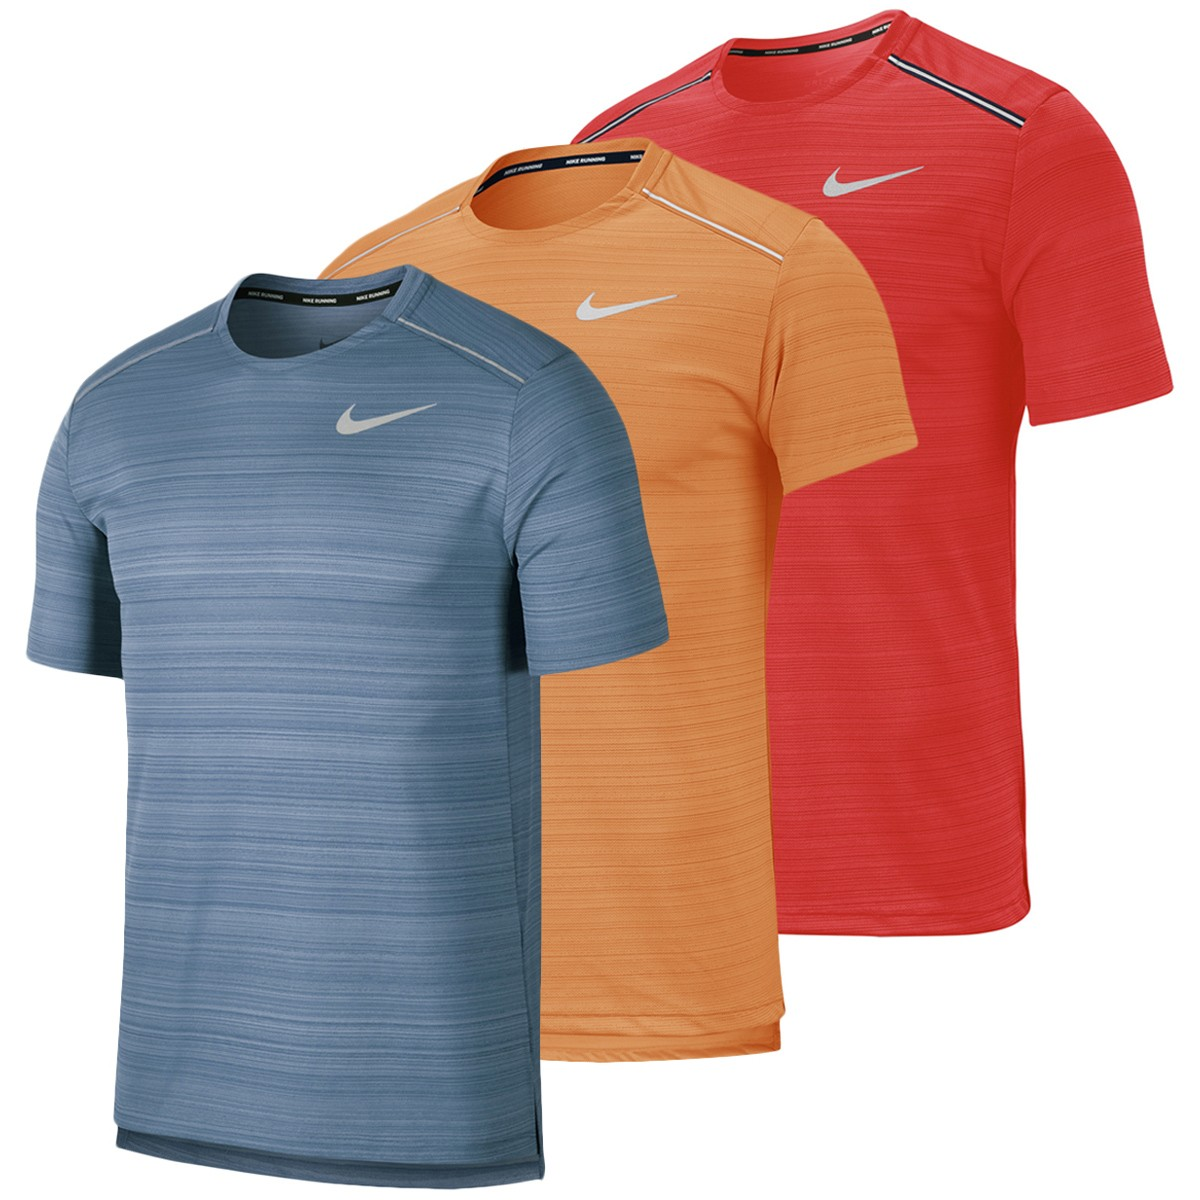 T-SHIRT NIKE DRI-FIT MILER